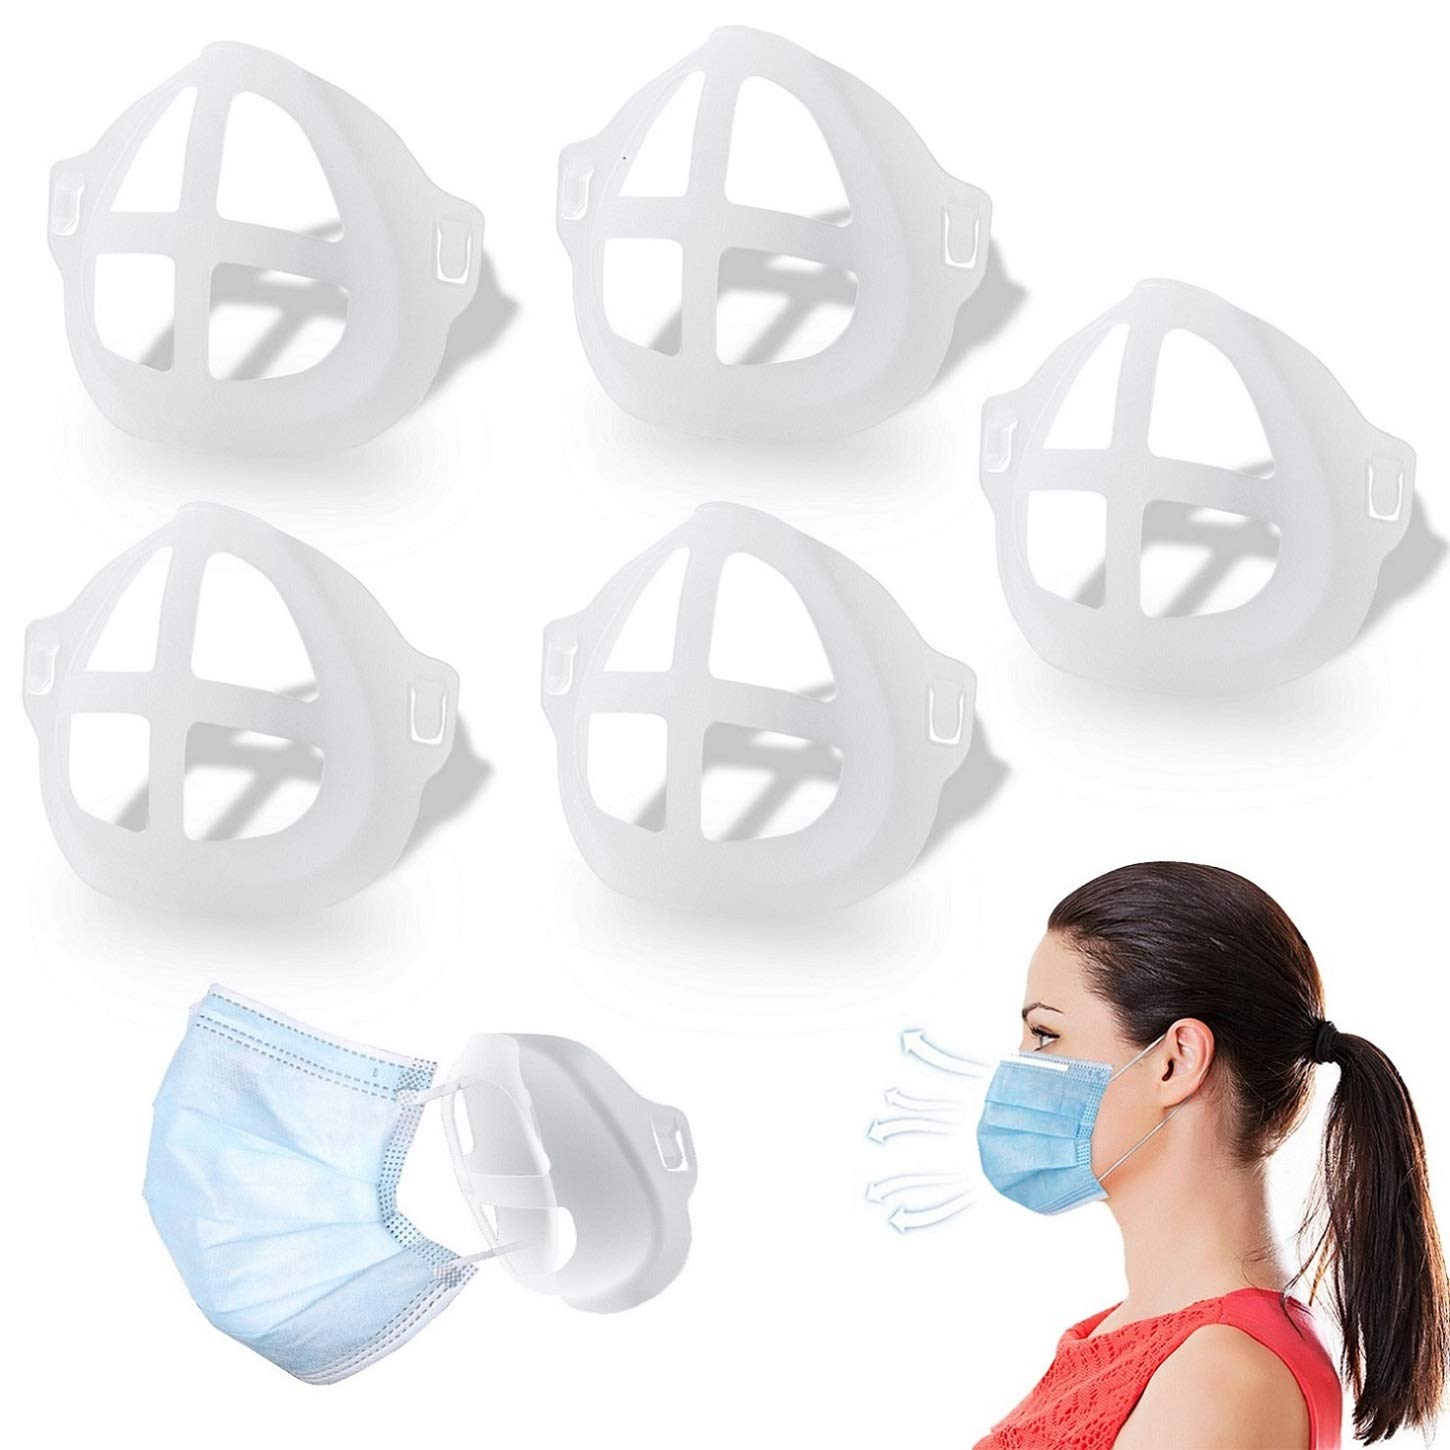 Face Mask Brackets Are the Hot New Accessory to Make Your Mask More Comfortable 61sJTqJFPWL._SL1450_